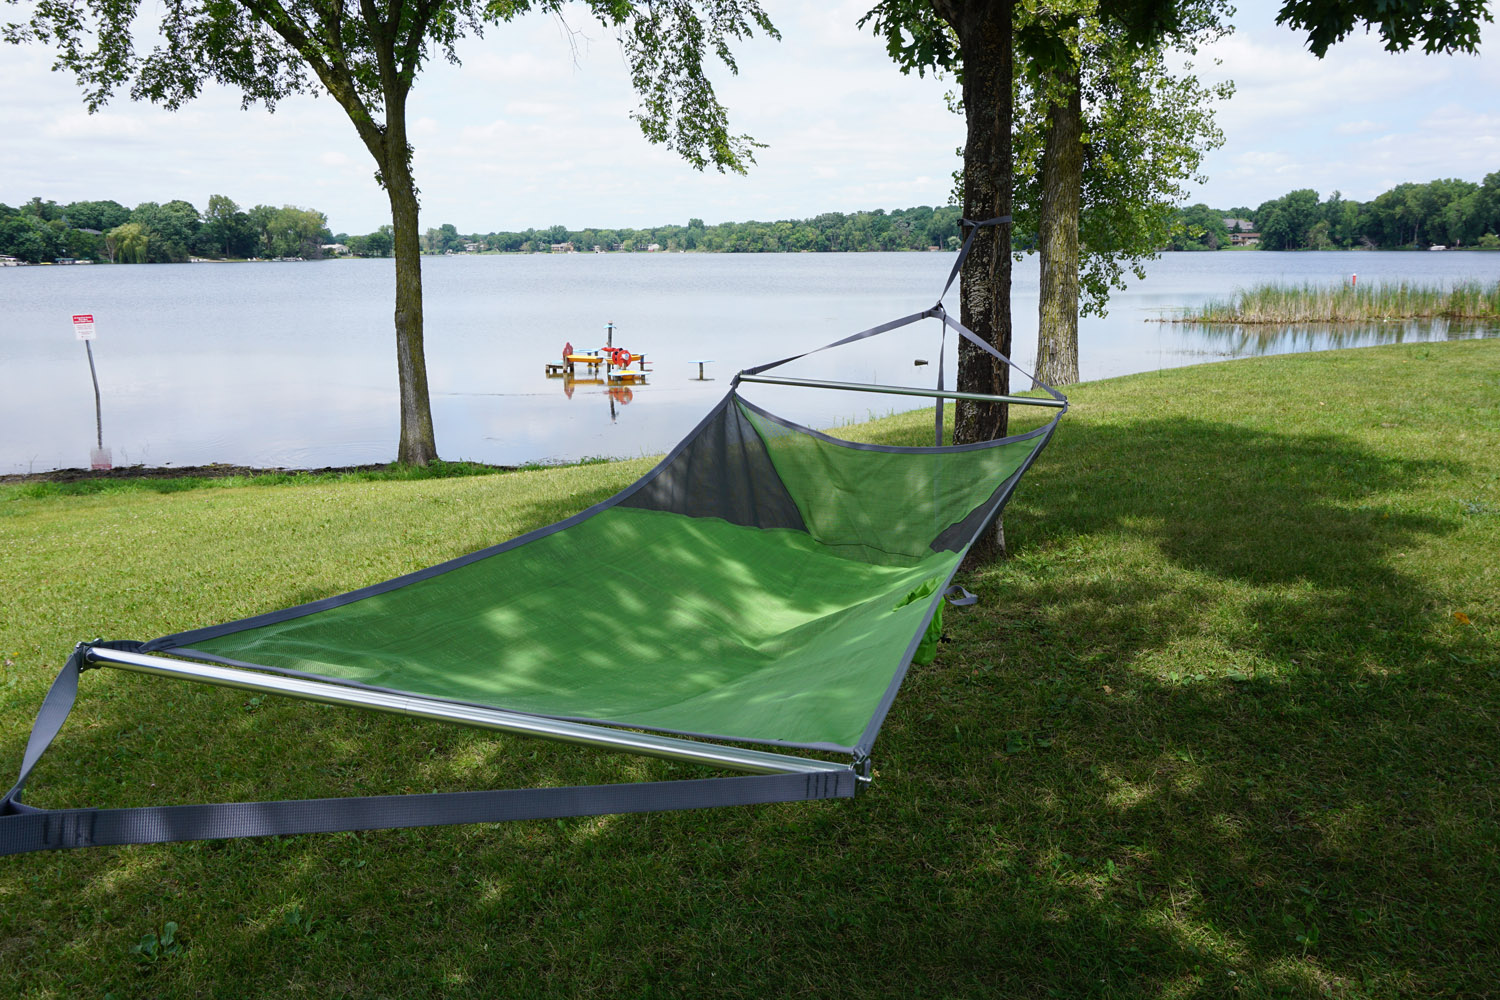 setup the green hammock camping united superiority alliance of in poles a medium rainstorm